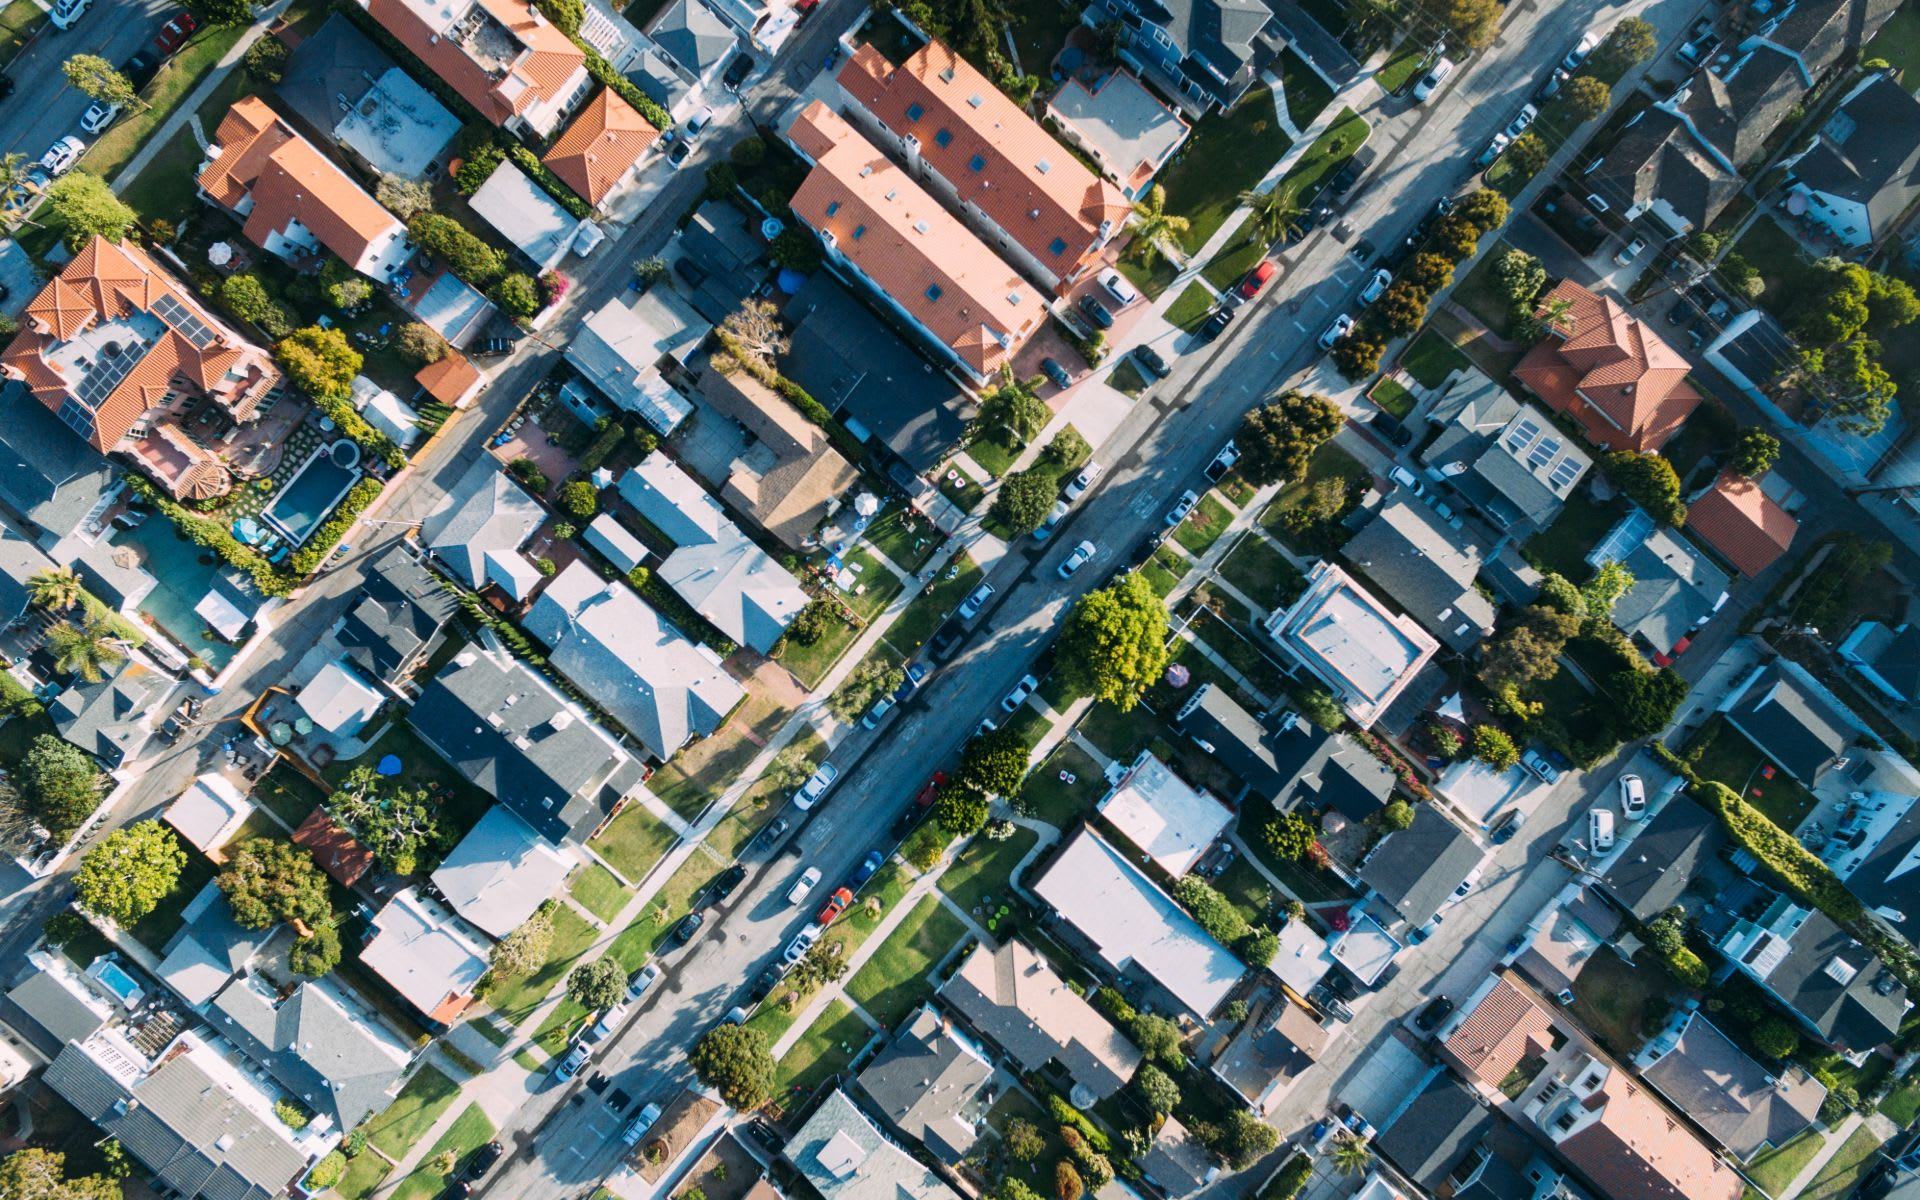 Single Family Home or Condo? Which Property Type is Right for You?